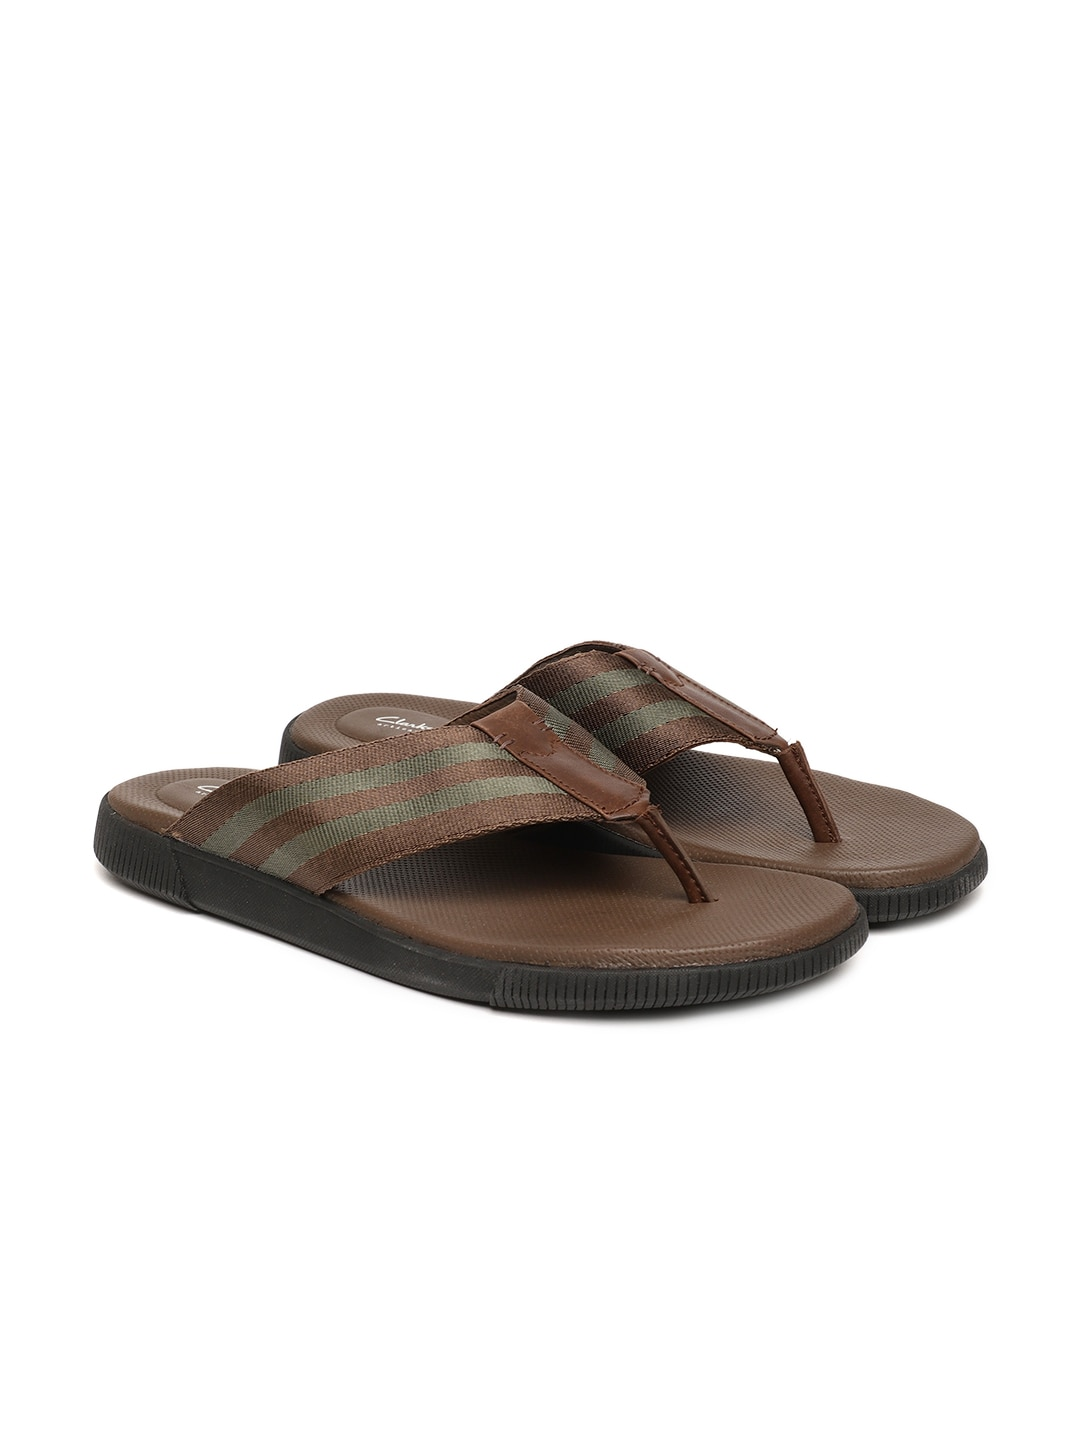 16ee51e63f0 CLARKS - Exclusive Clarks Shoes Online Store in India - Myntra